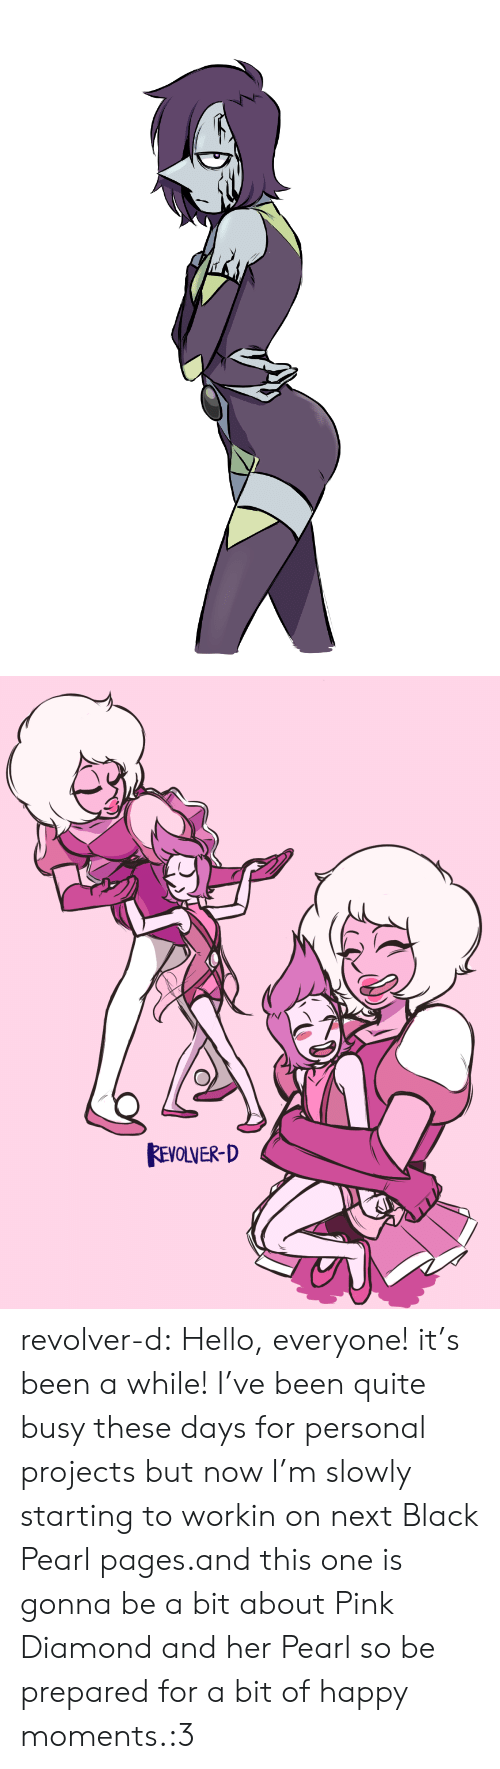 Been A While: REVOLVER-D revolver-d:  Hello, everyone! it's been a while! I've been quite busy these days for personal projects but now I'm slowly starting to workin on next Black Pearl pages.and this one is gonna be a bit about Pink Diamond and her Pearl so be prepared for a bit of happy moments.:3